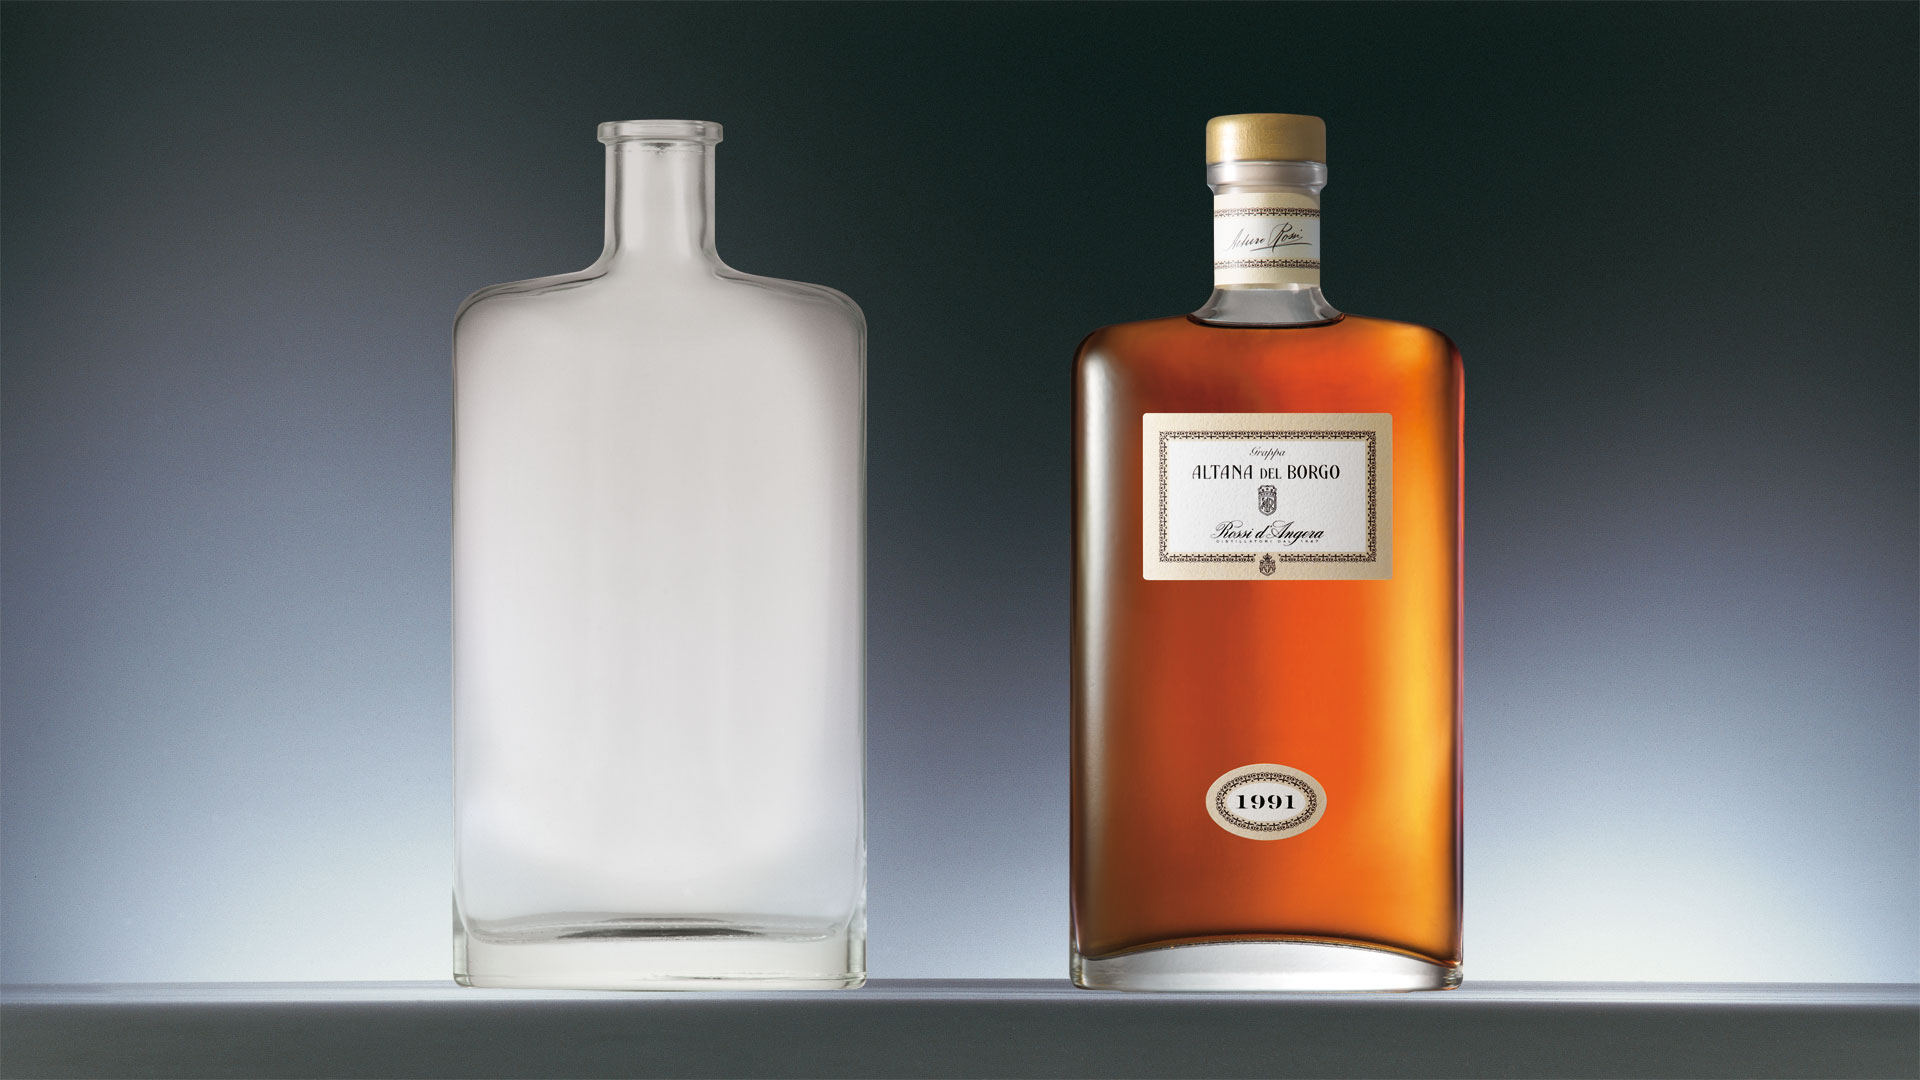 Rossi d'Angera bottle design